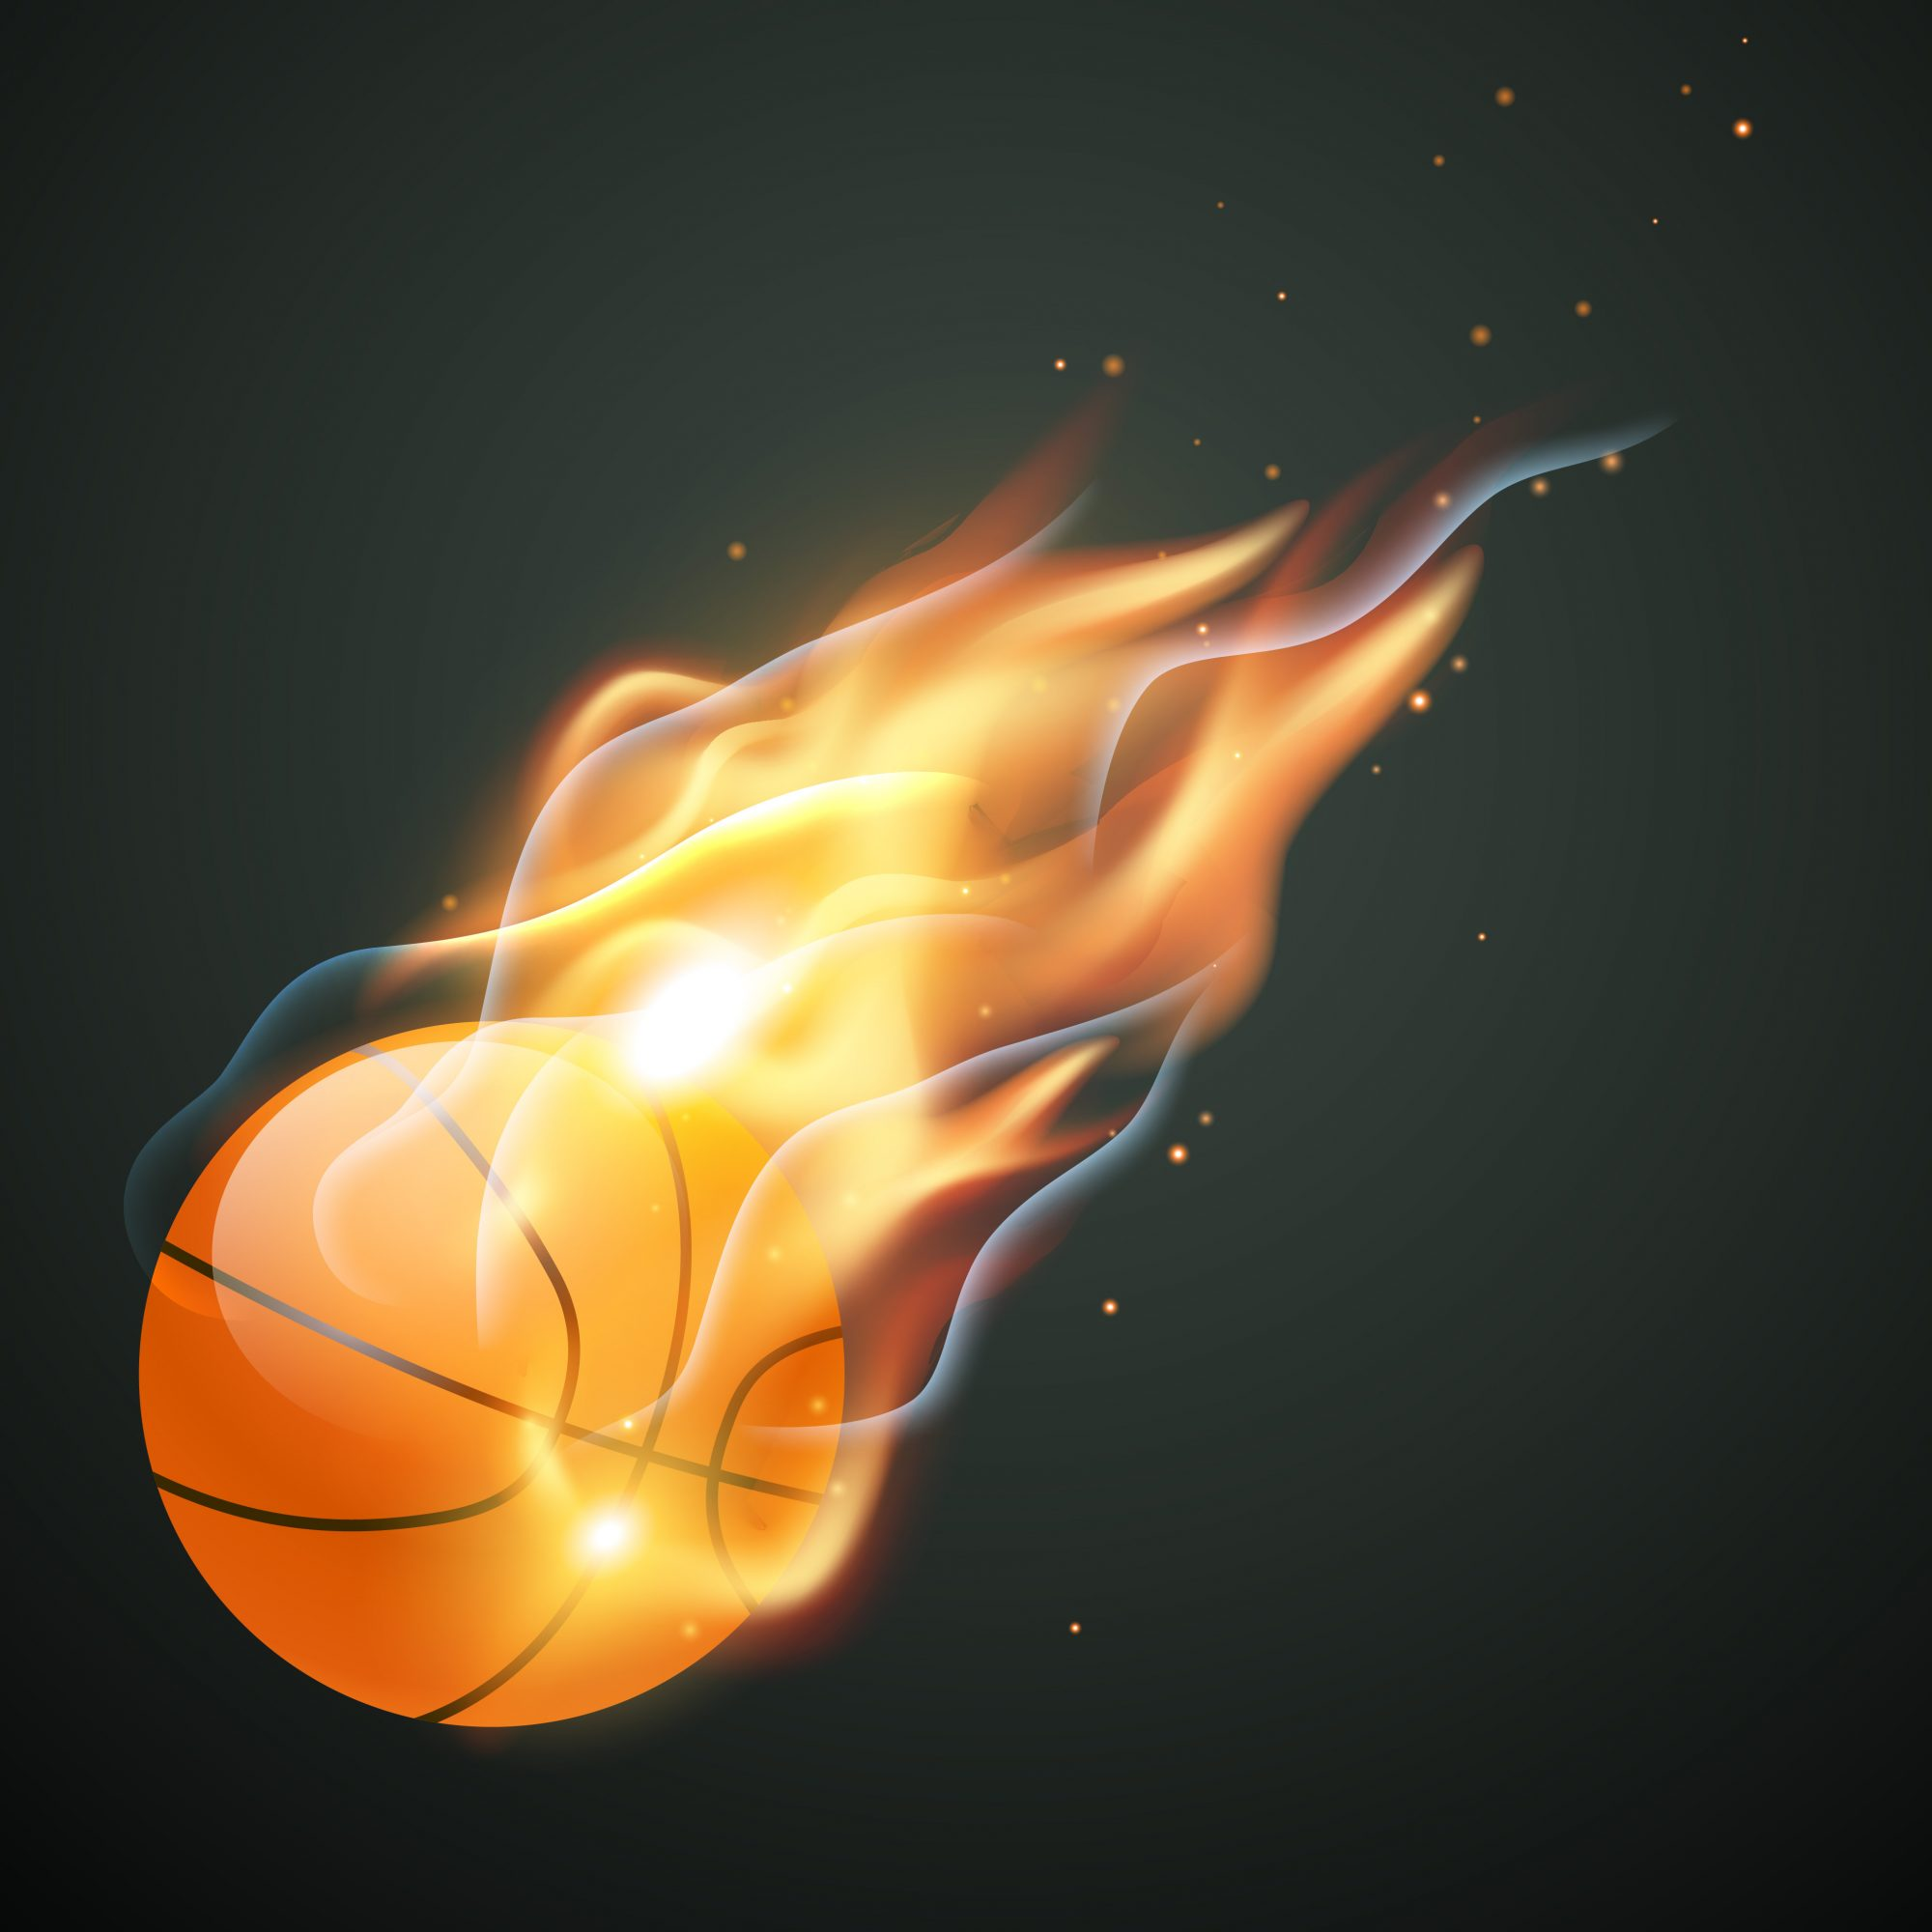 burning basketball illustration